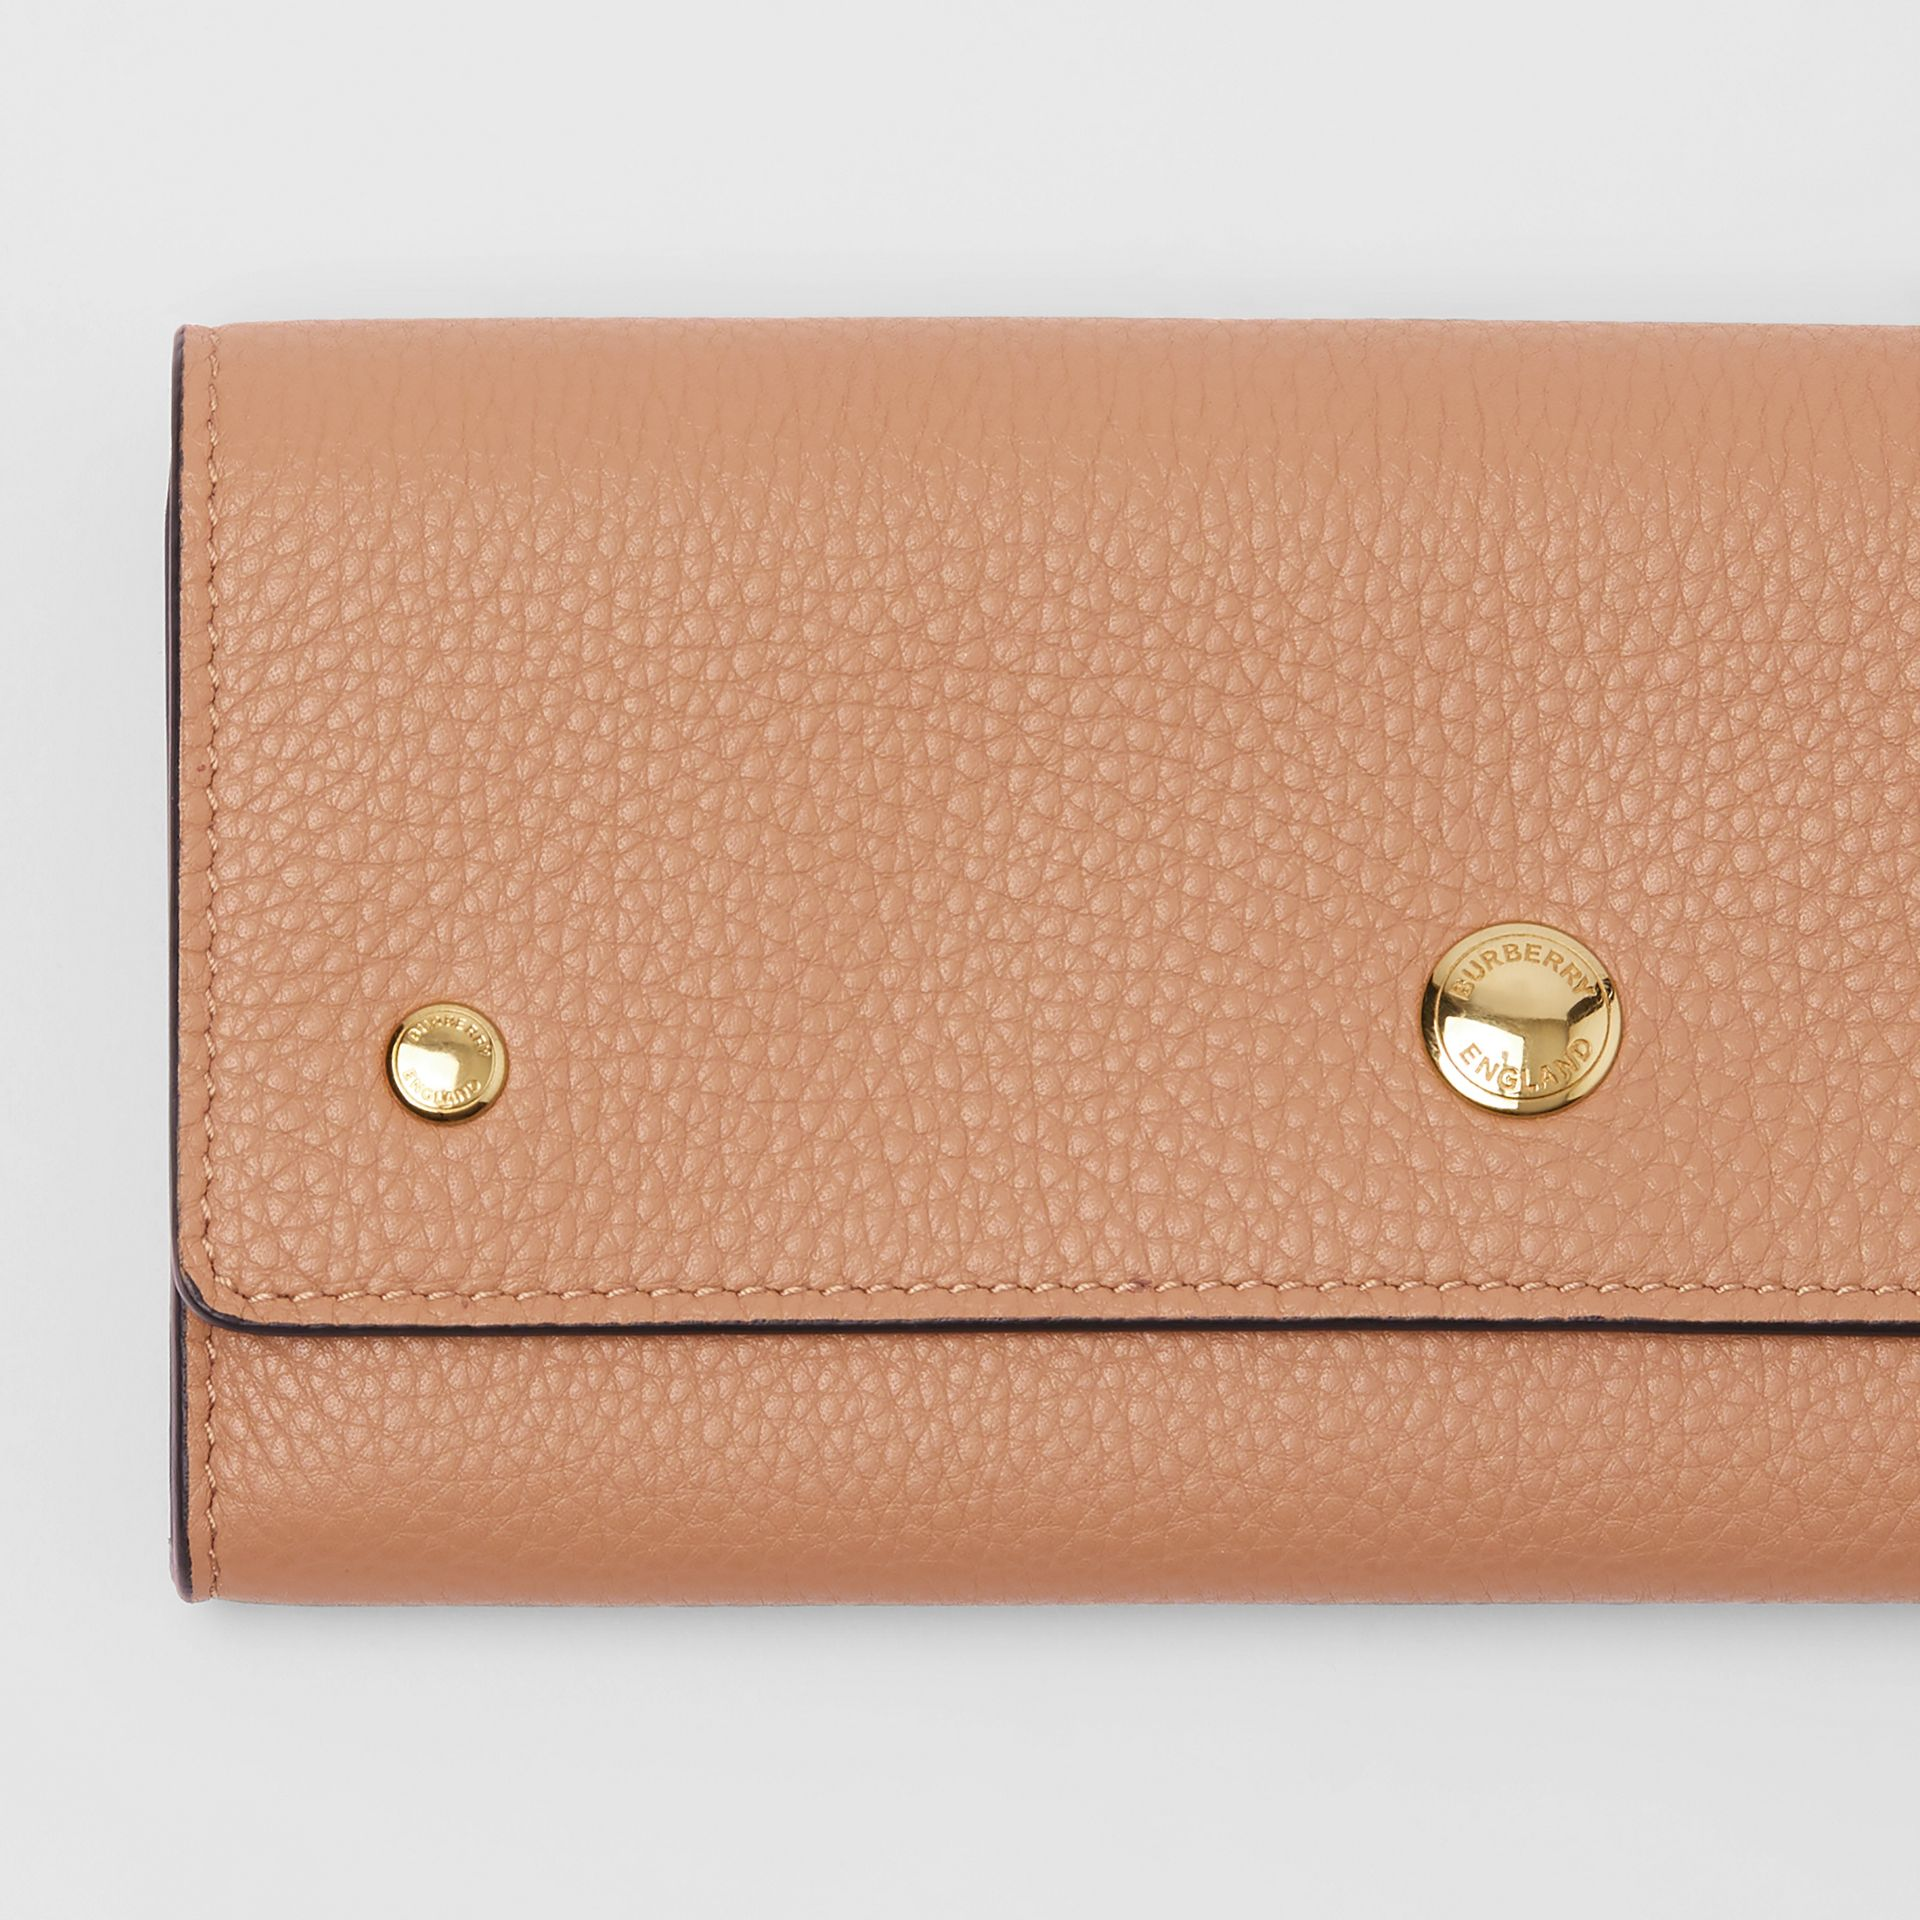 Grainy Leather Continental Wallet in Light Camel - Women | Burberry Canada - gallery image 1